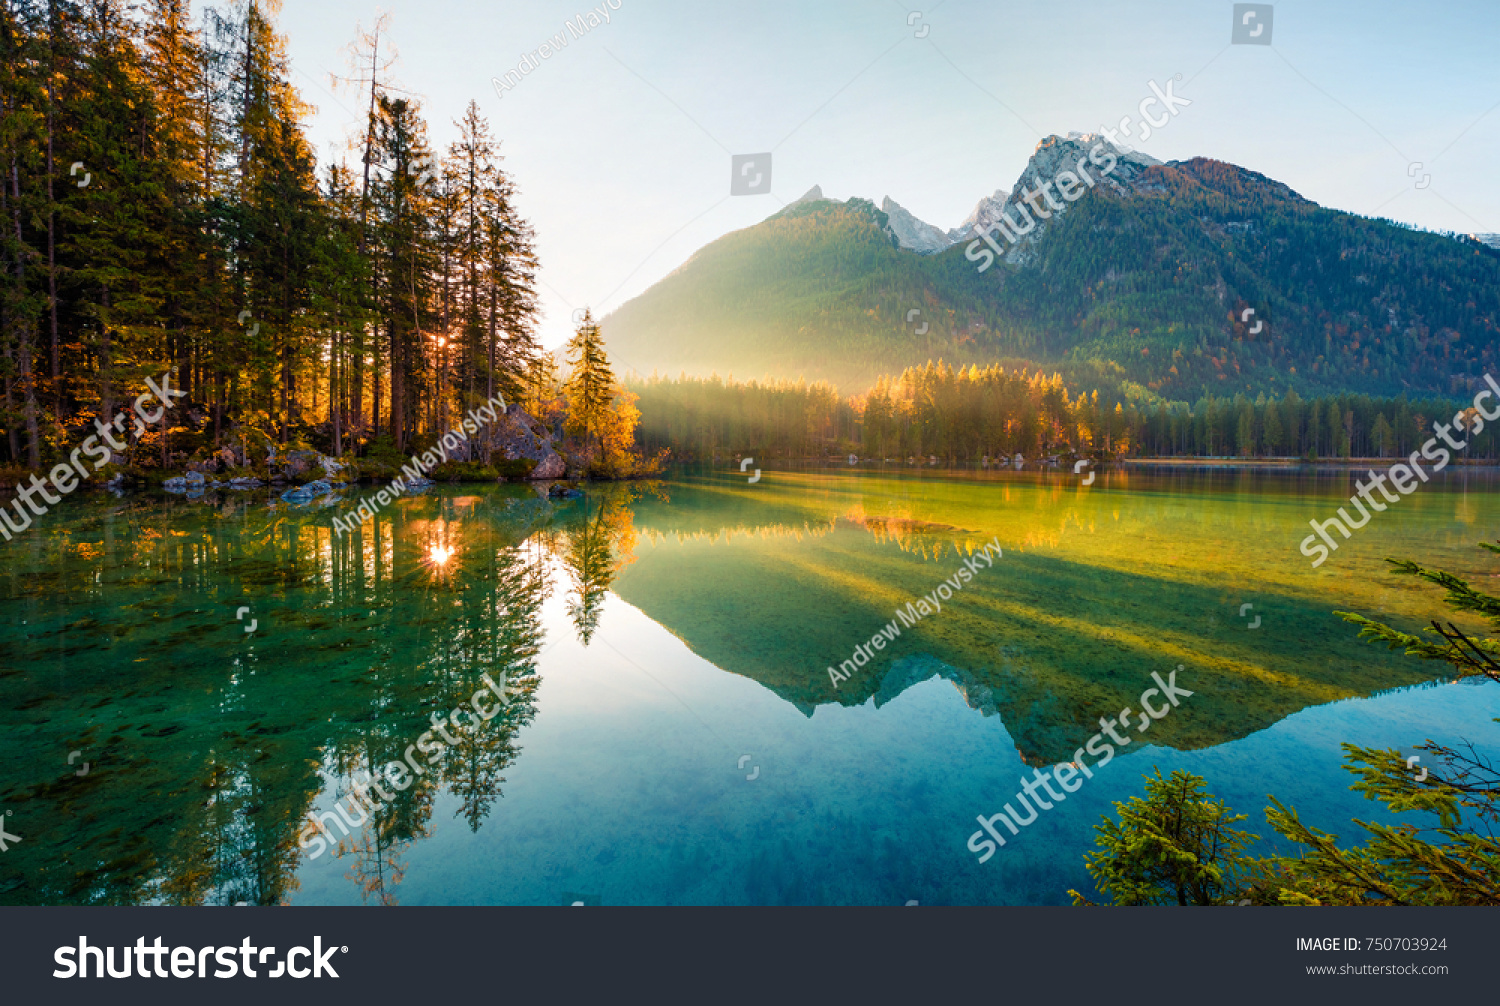 Wonderful autumn sunrise of Hintersee lake. Amazing morning view of Bavarian Alps on the Austrian border, Germany, Europe. Beauty of nature concept background. #750703924